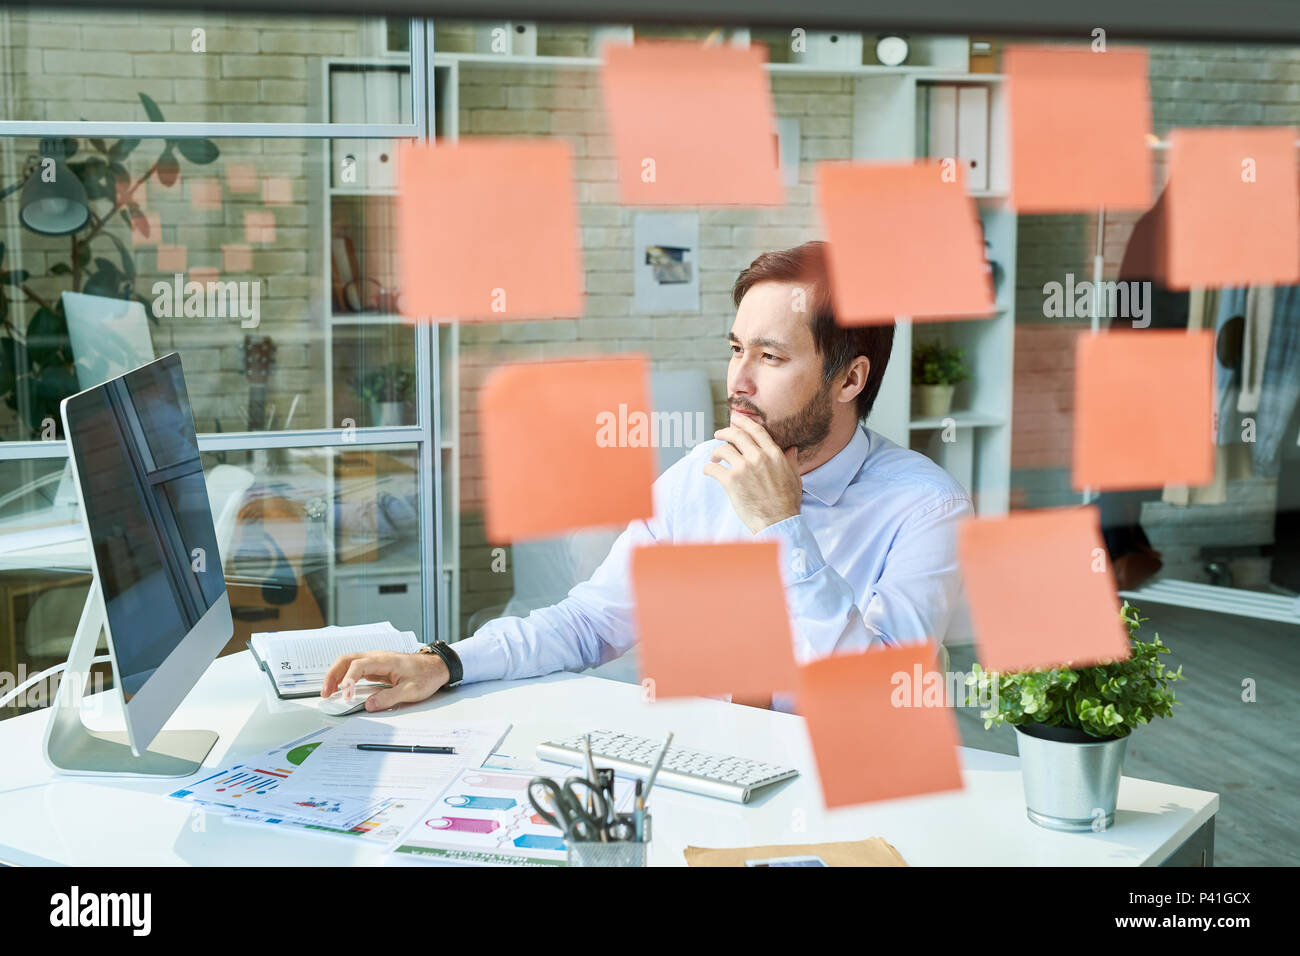 Man working in office derrière une vitre Photo Stock